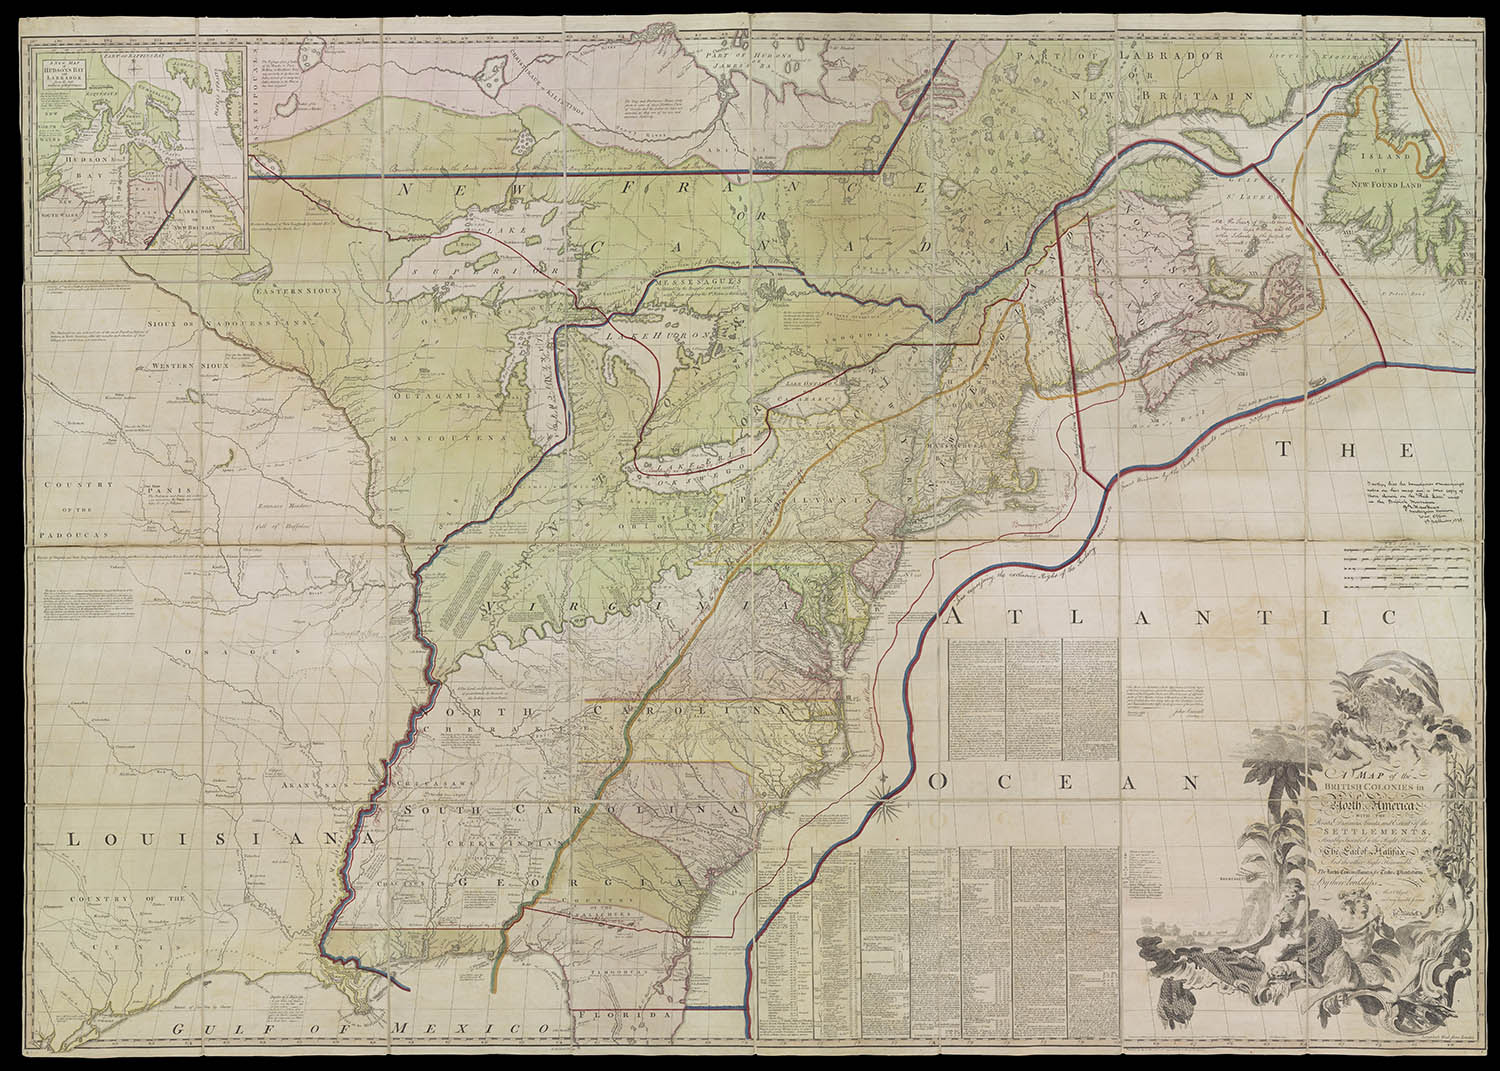 lecture series mapping territory and identity in colonial america and the early republic sponsored by the edmund f ball and virginia b ball endowed